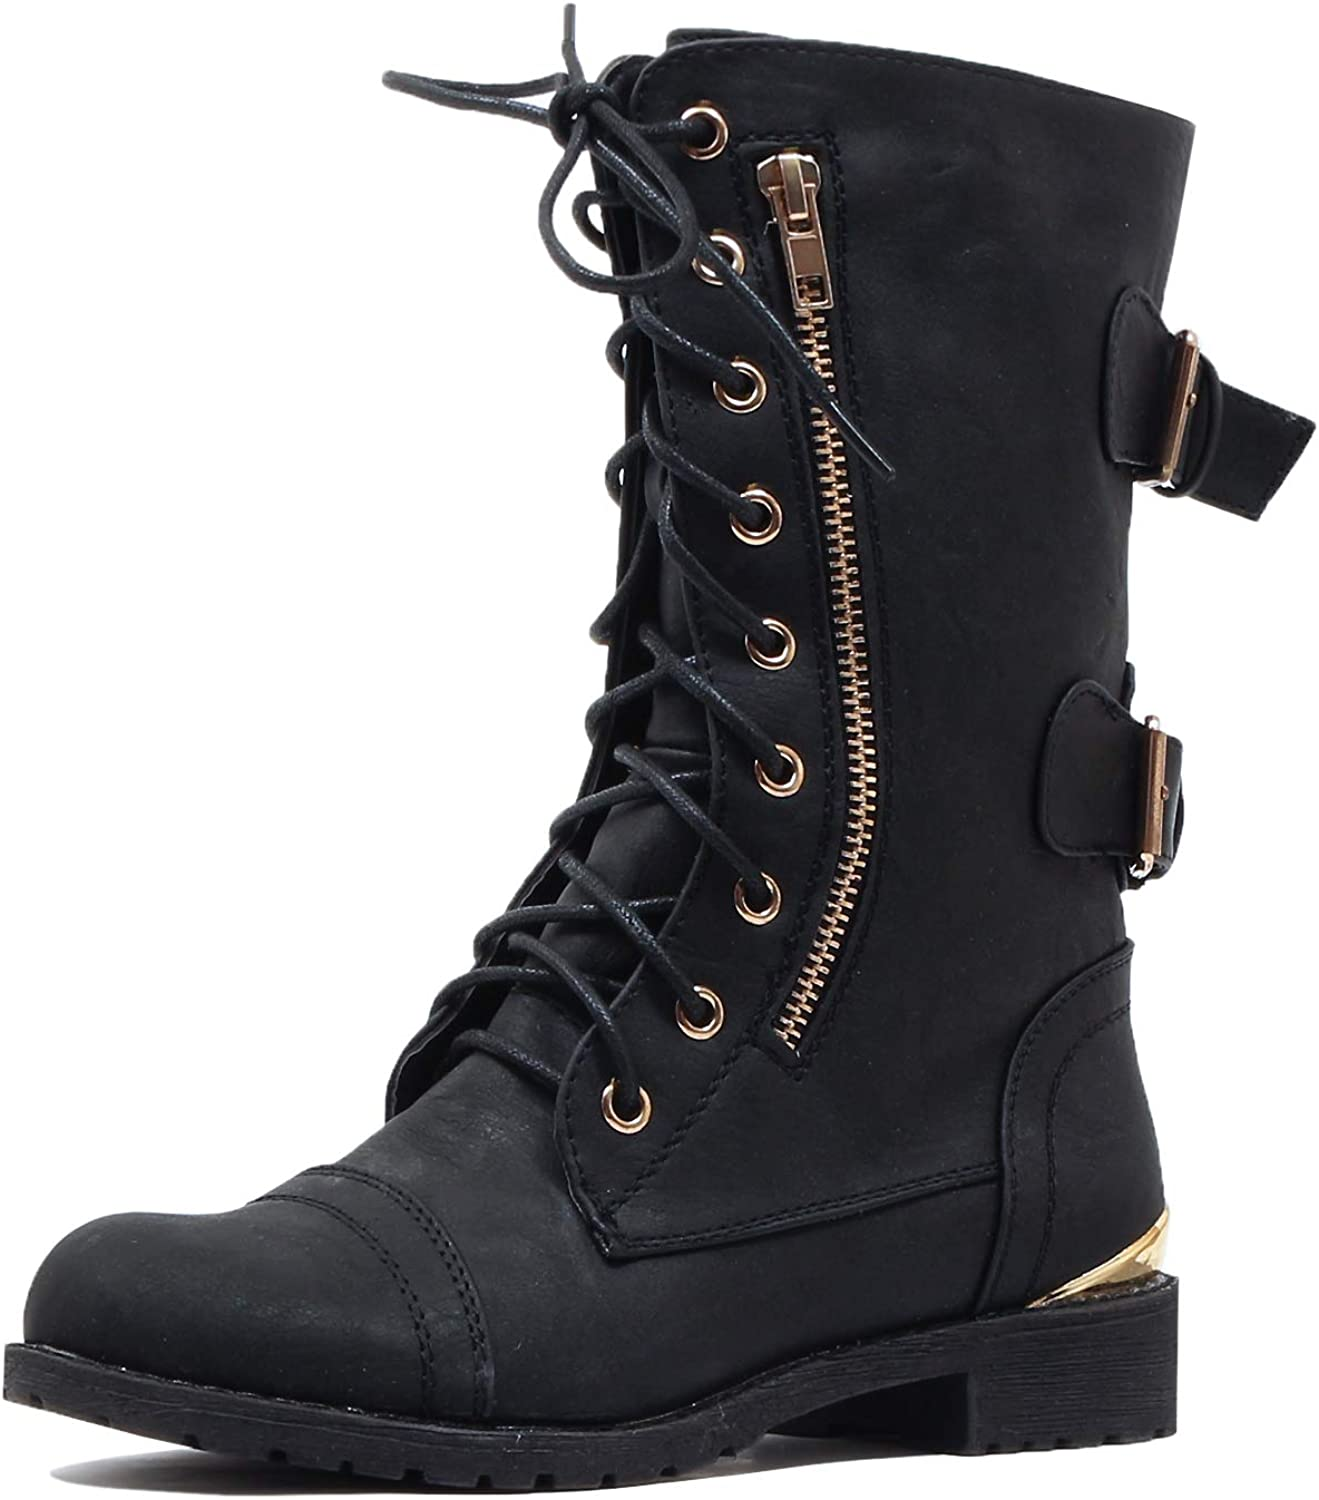 Guilty Heart Womens Cairo Military Lace Up Combat Boots Boots M US, Blackv2 Pu 10 B